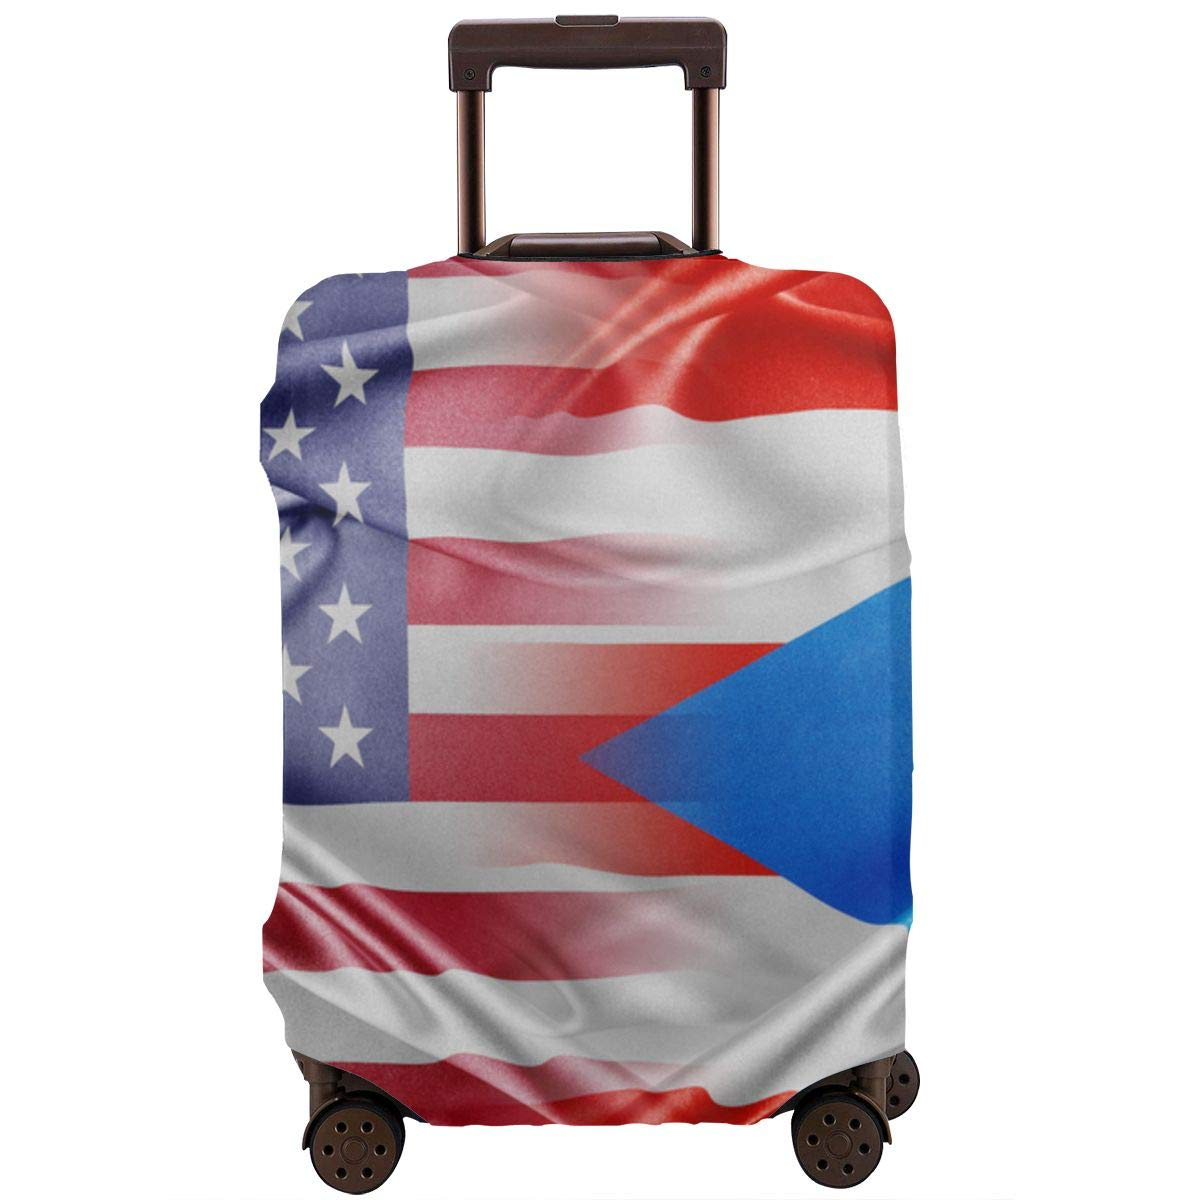 USA and Puerto Rico Travel Luggage Cover Suitcase Protector Fits for 18-32 Inch Luggage Conceptual Image XL Relations Between Two Countries